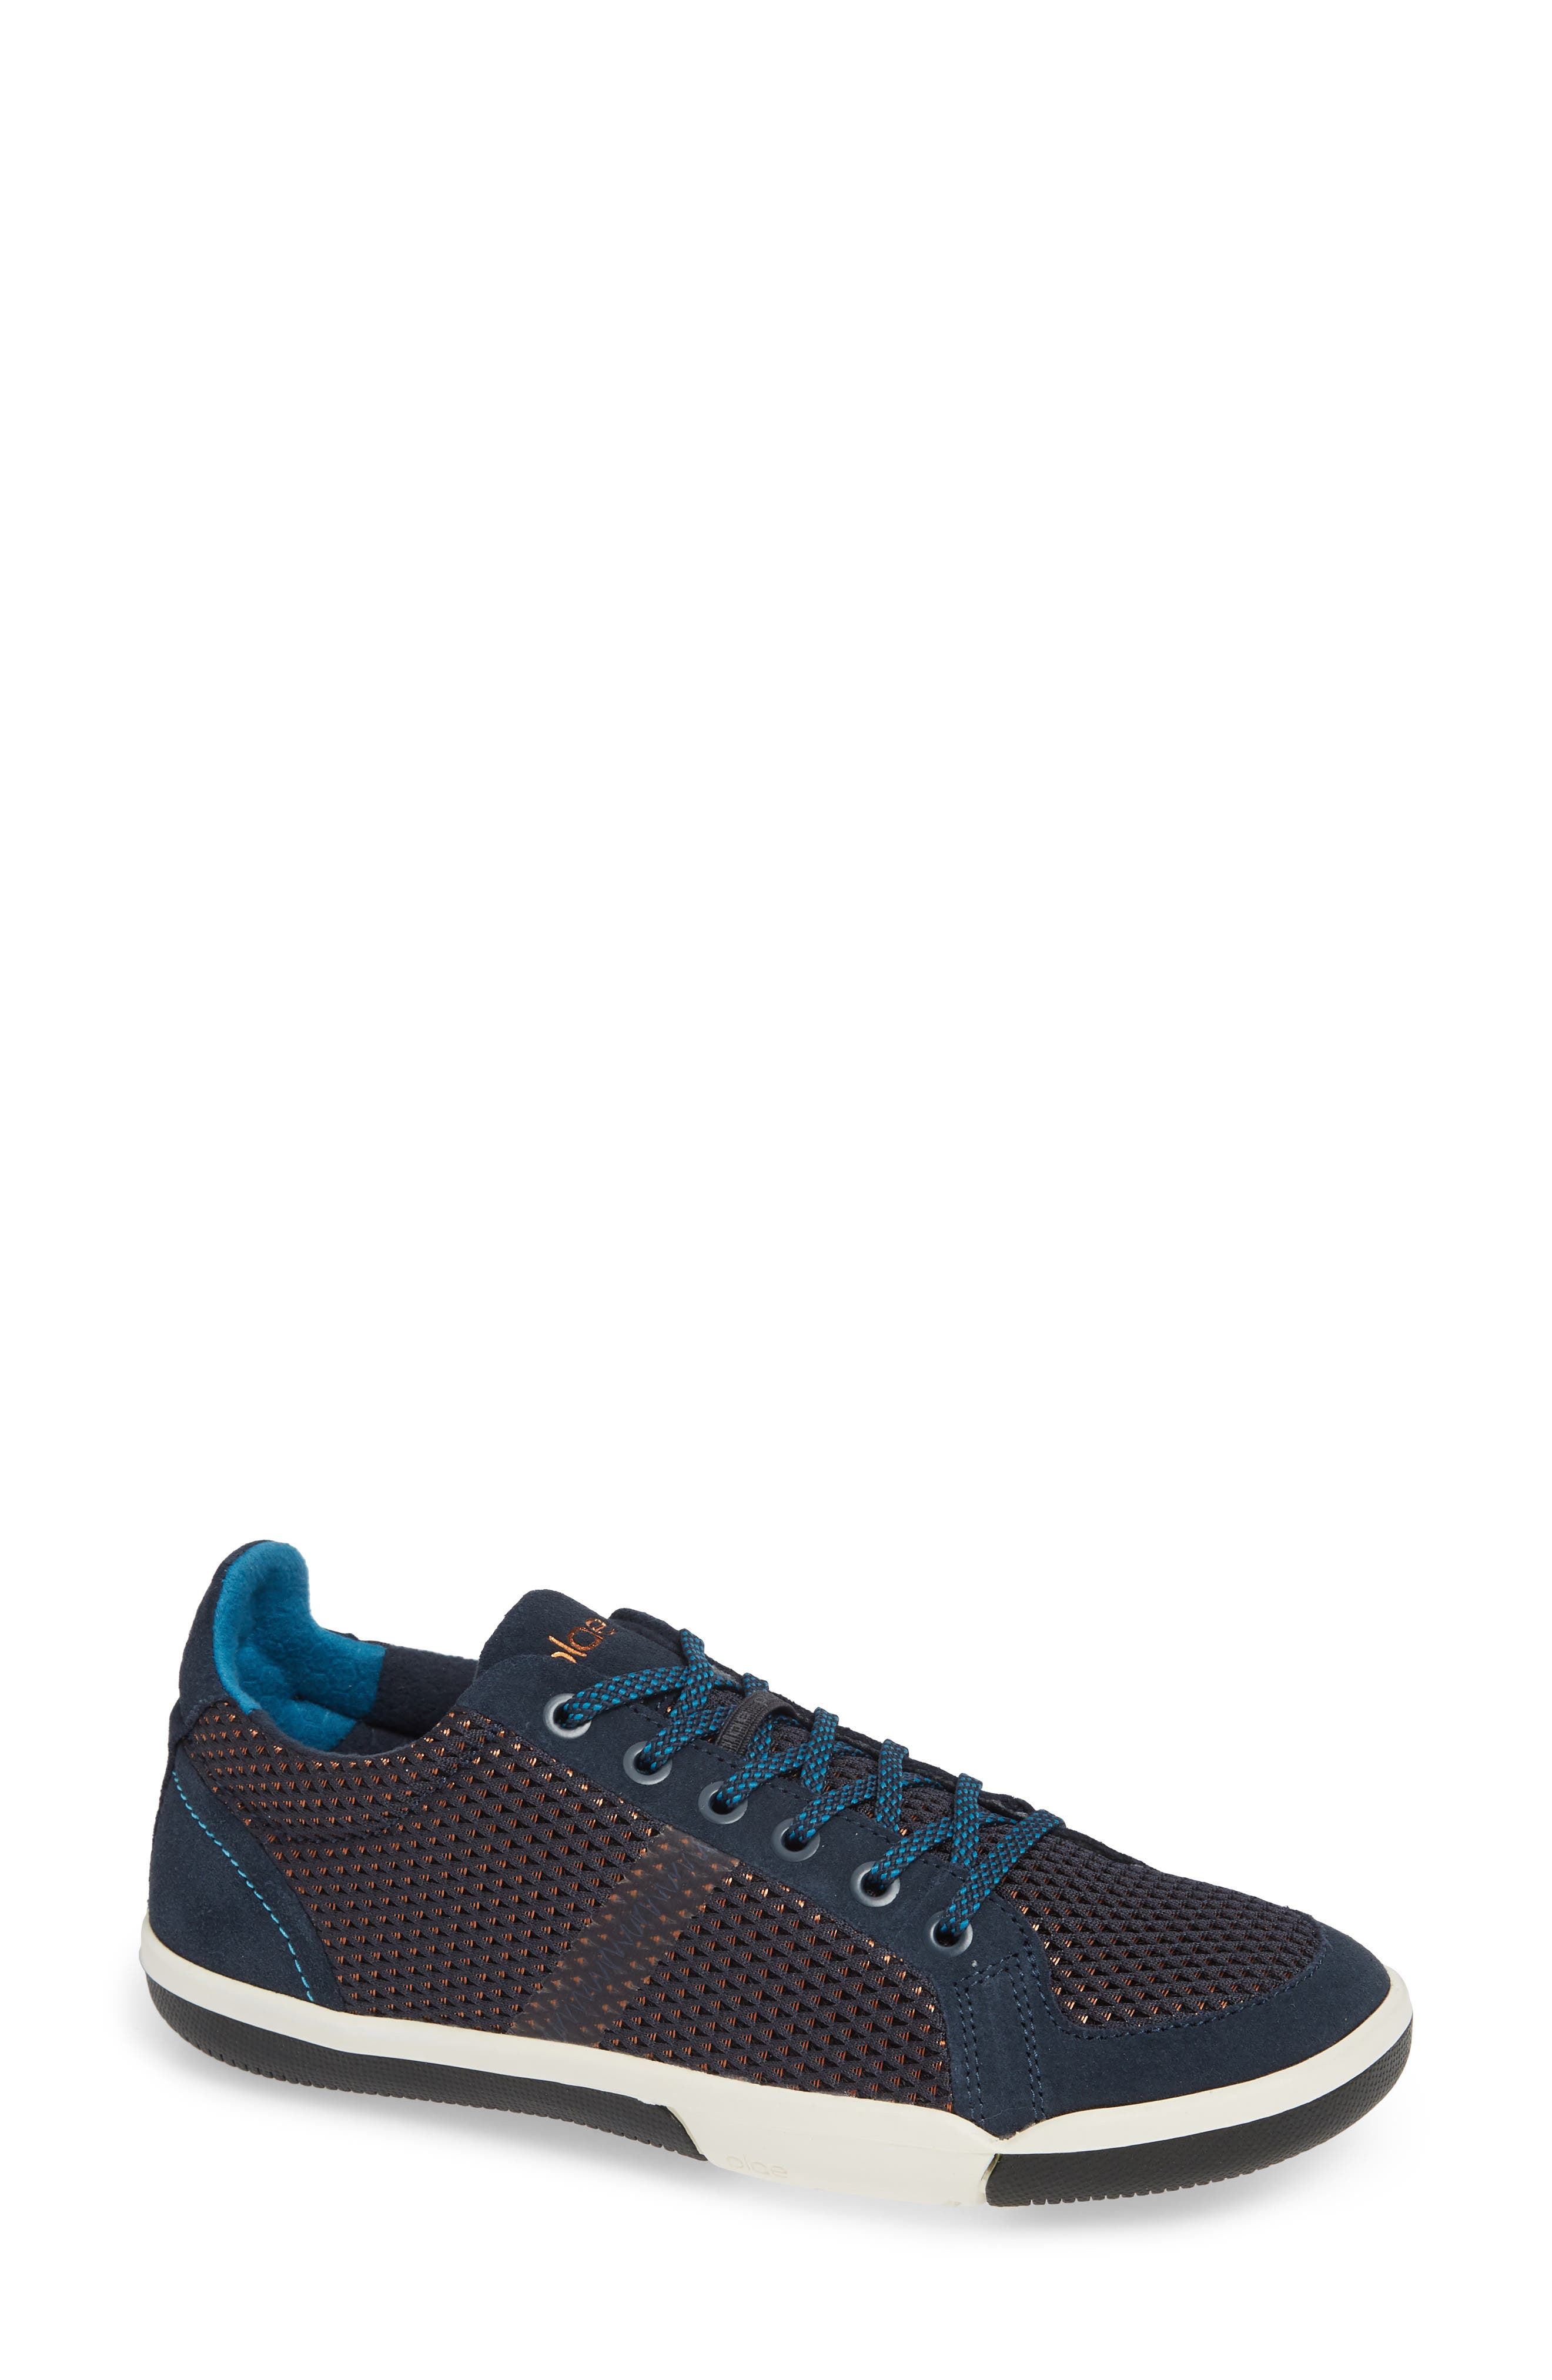 Prospect Sneaker,                         Main,                         color, STINGRAY BLUE SUEDE